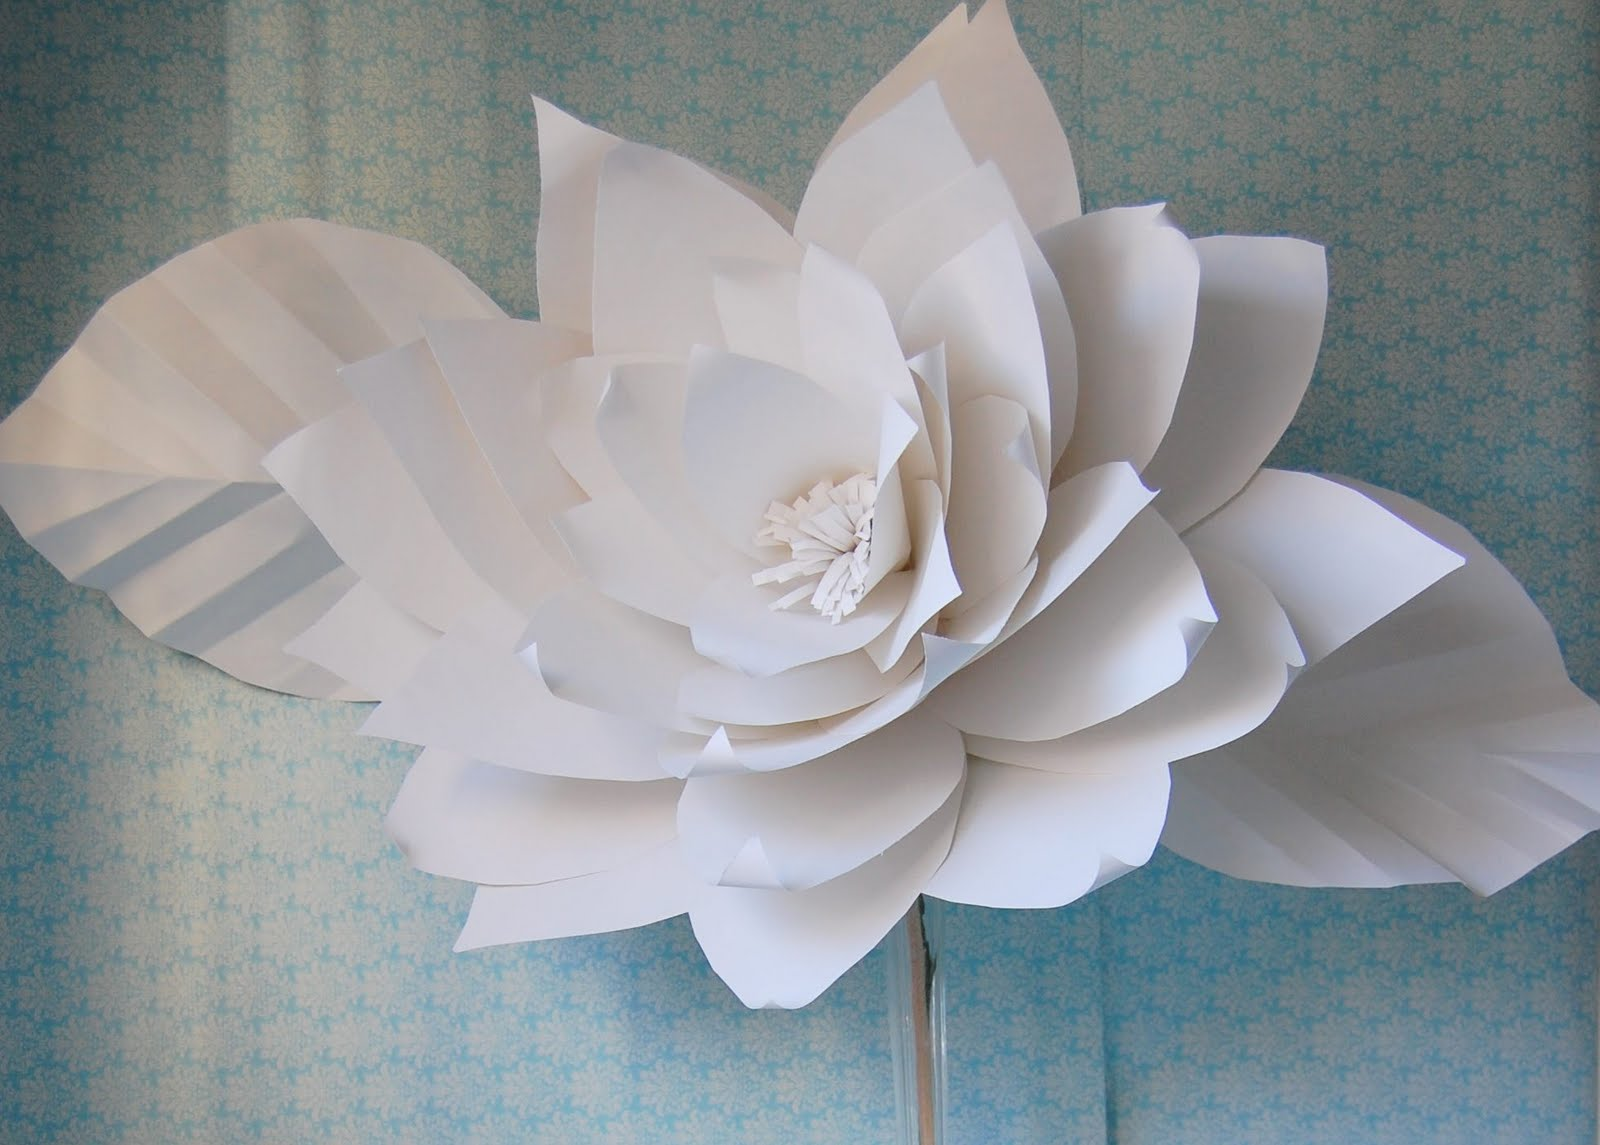 chanel show inspired huge large white paper flowers